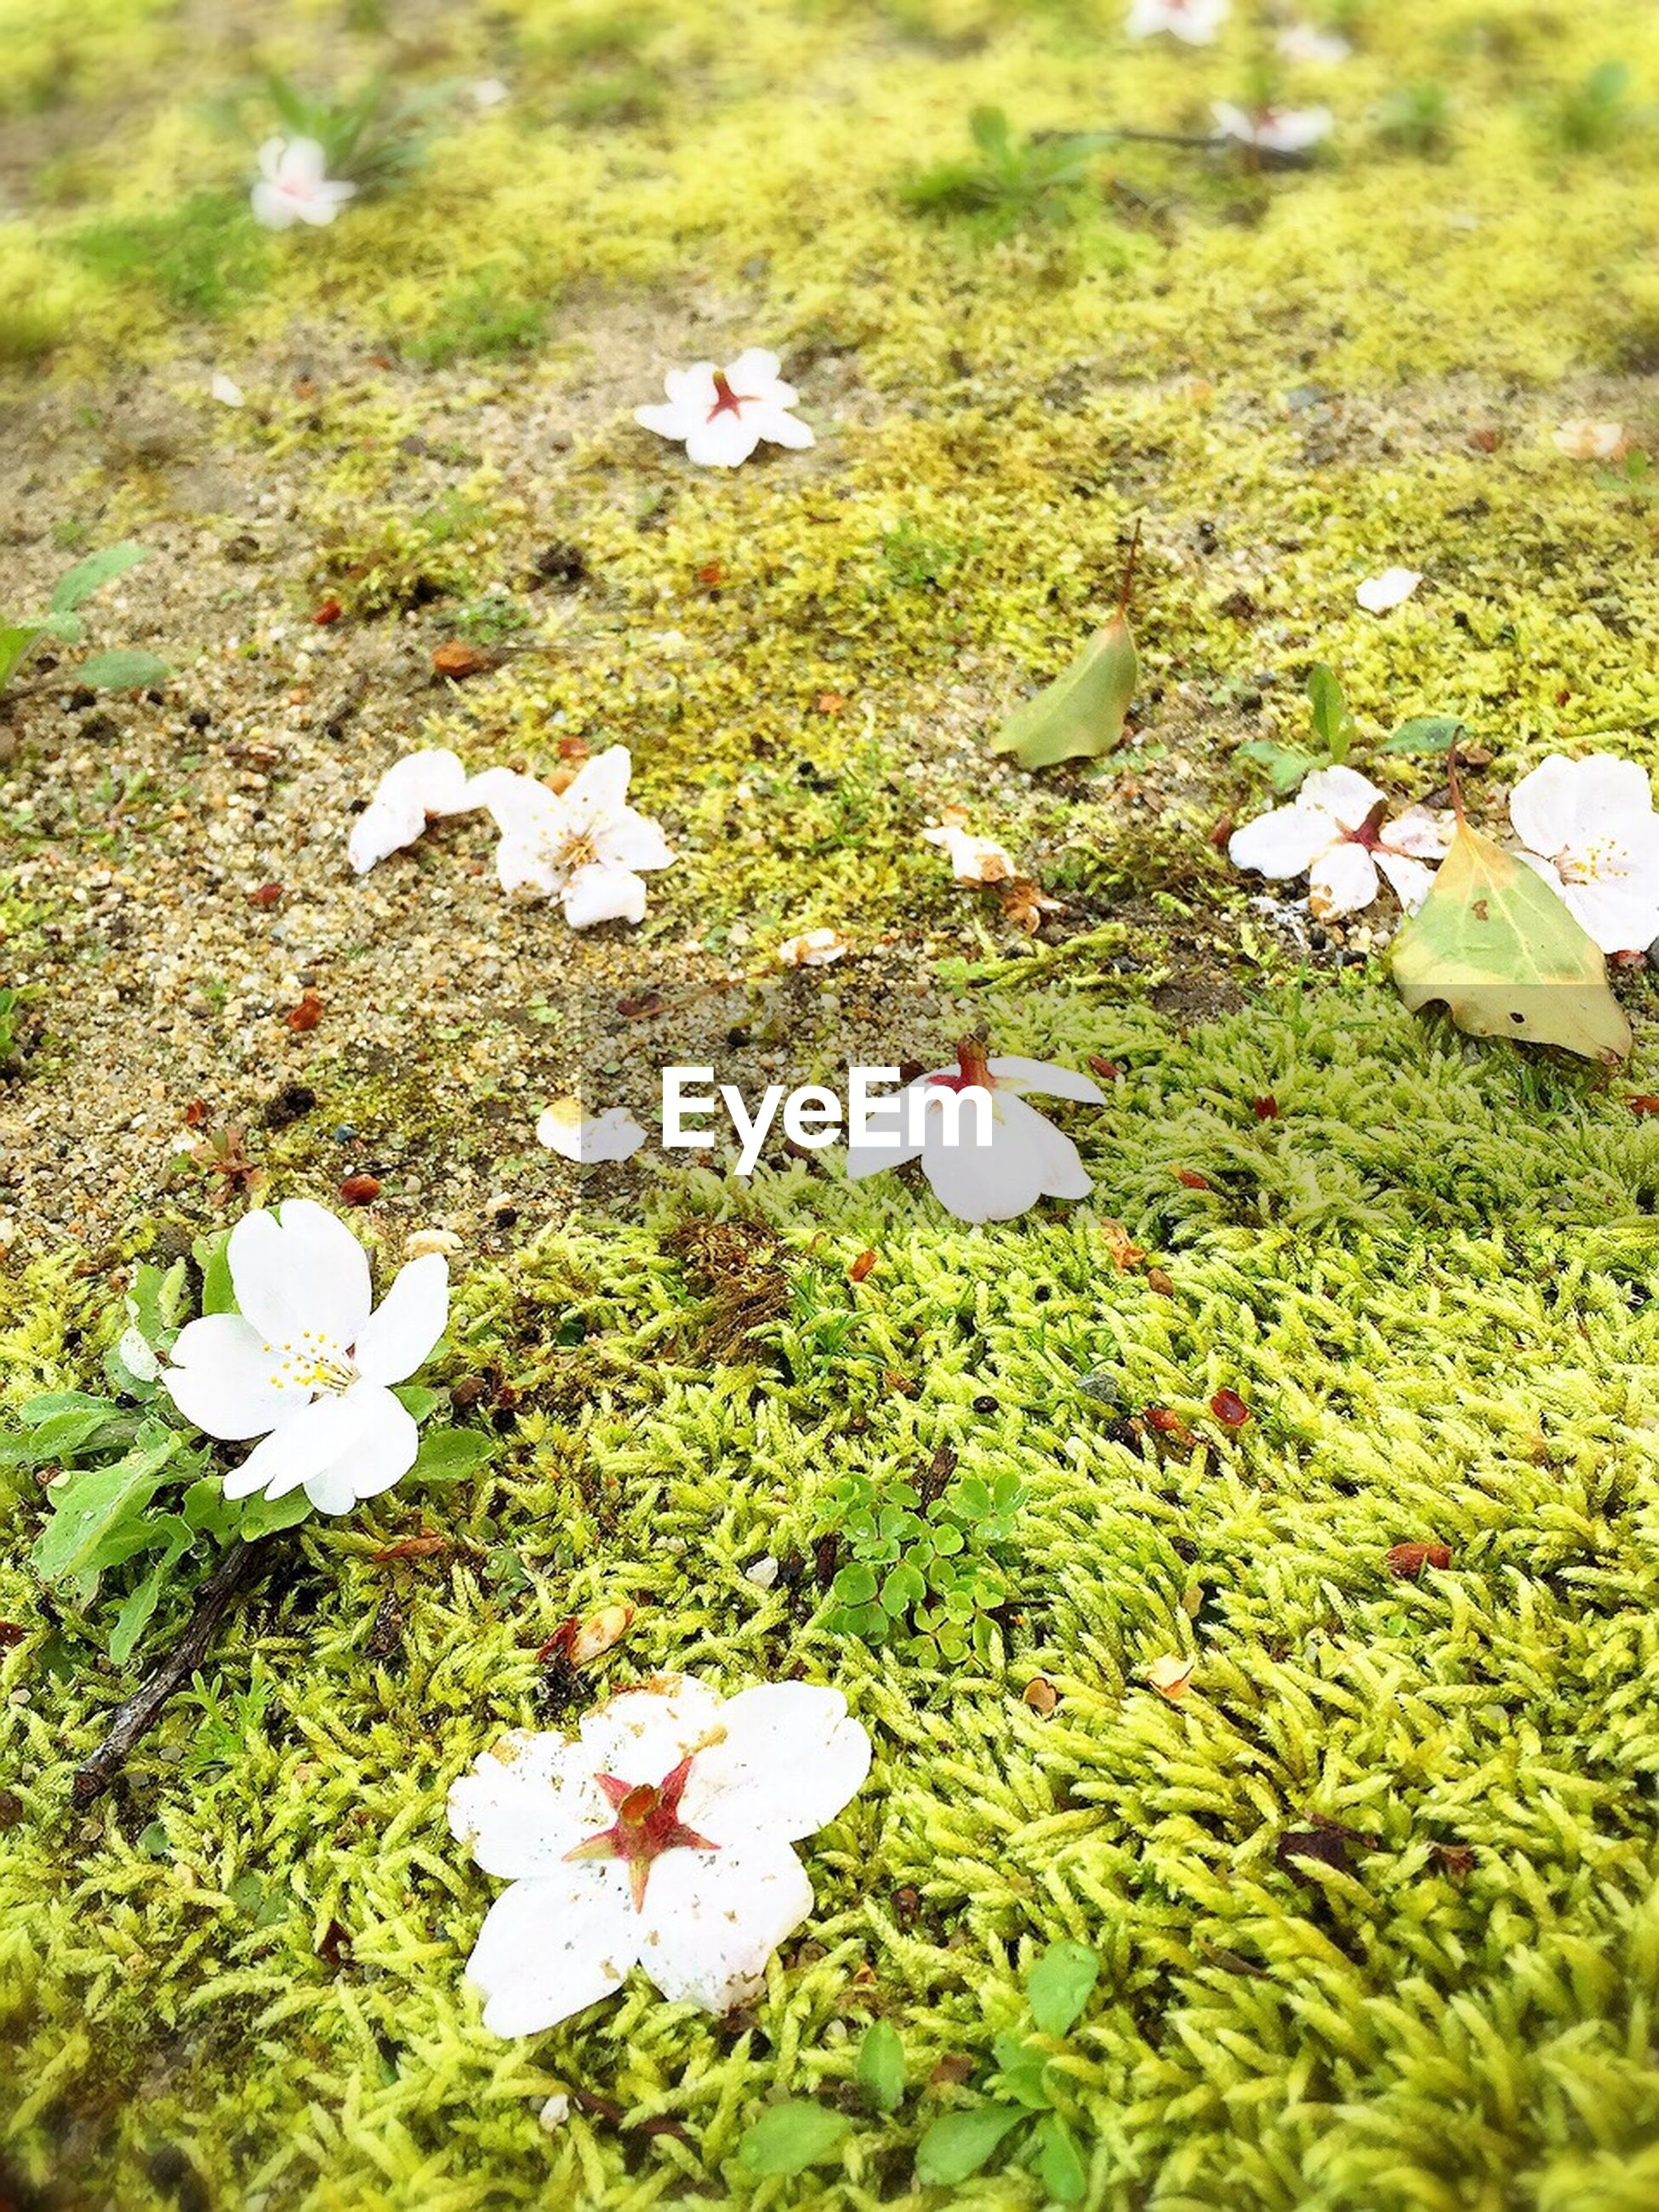 flower, grass, petal, fragility, high angle view, growth, freshness, white color, field, flower head, nature, leaf, beauty in nature, green color, plant, grassy, blooming, day, close-up, no people